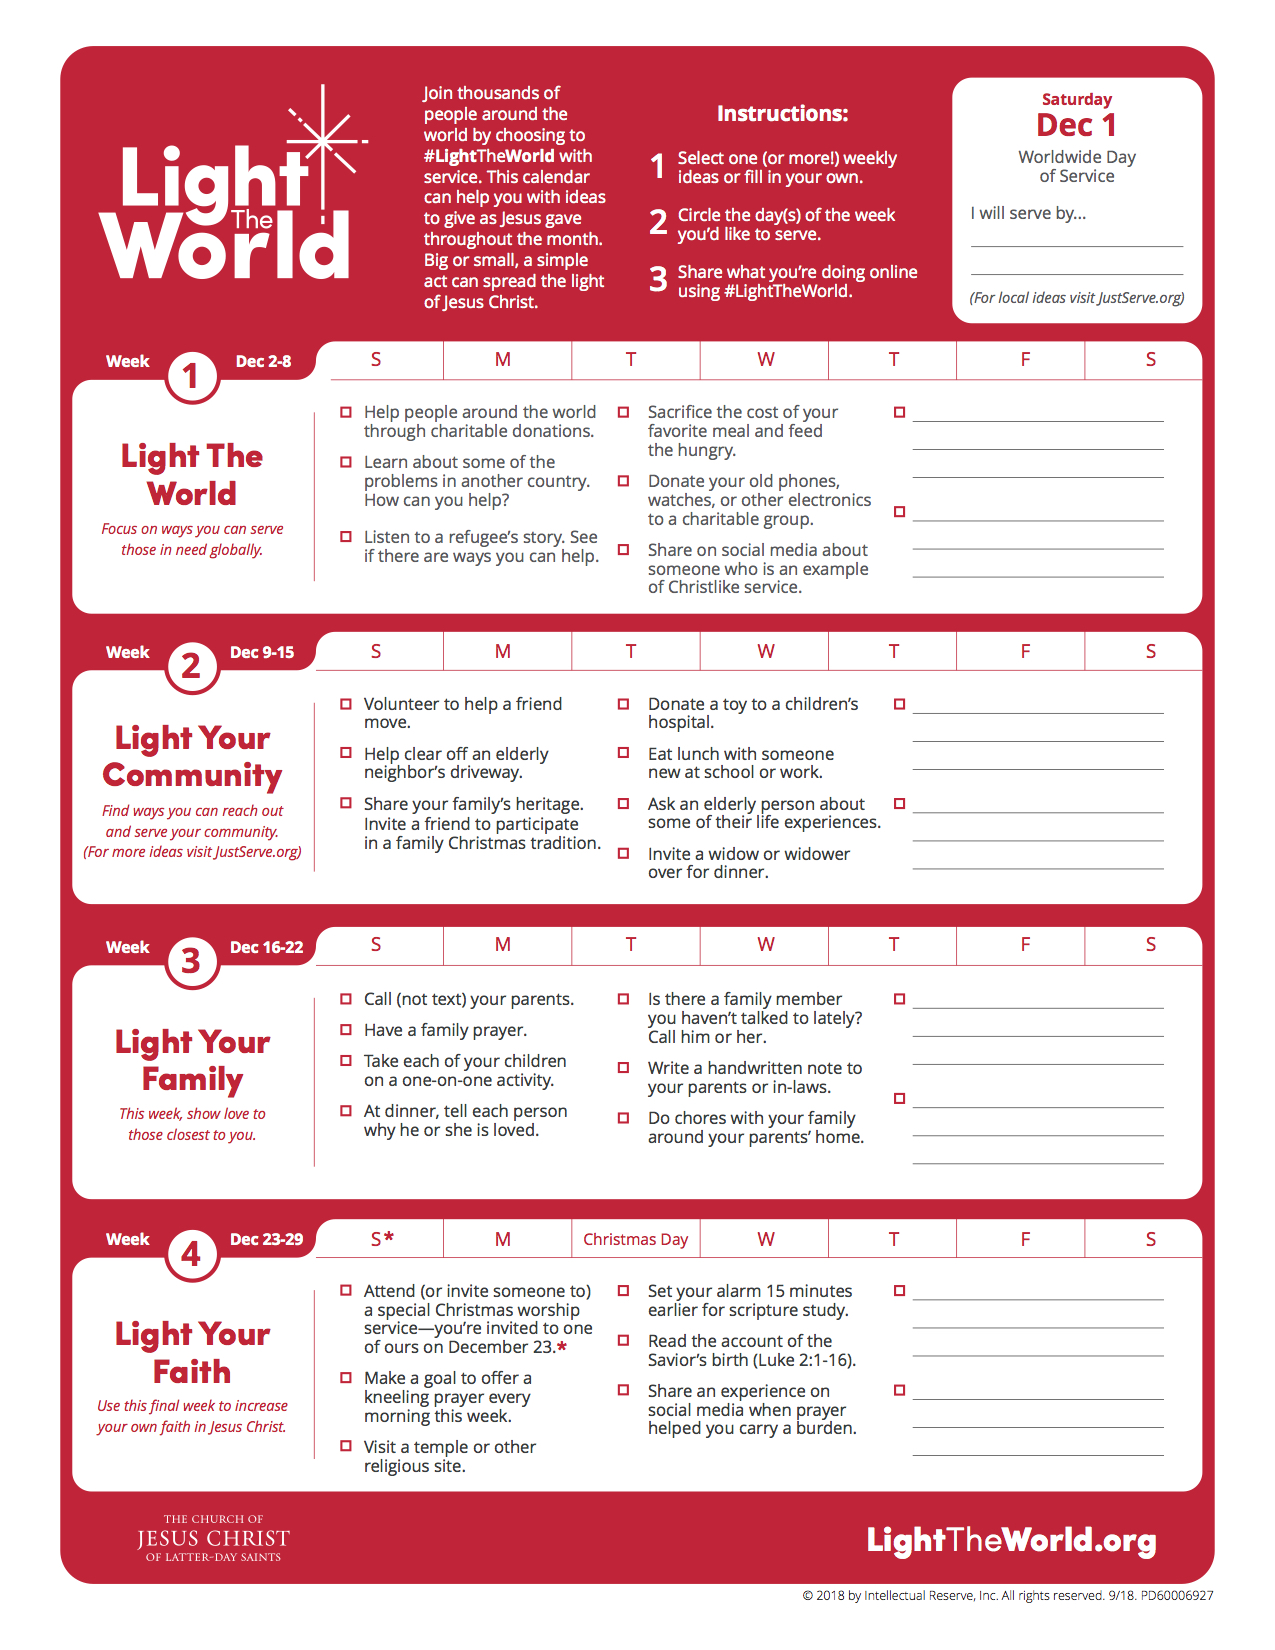 A calendar provides ideas for this year's Light the World campaign.